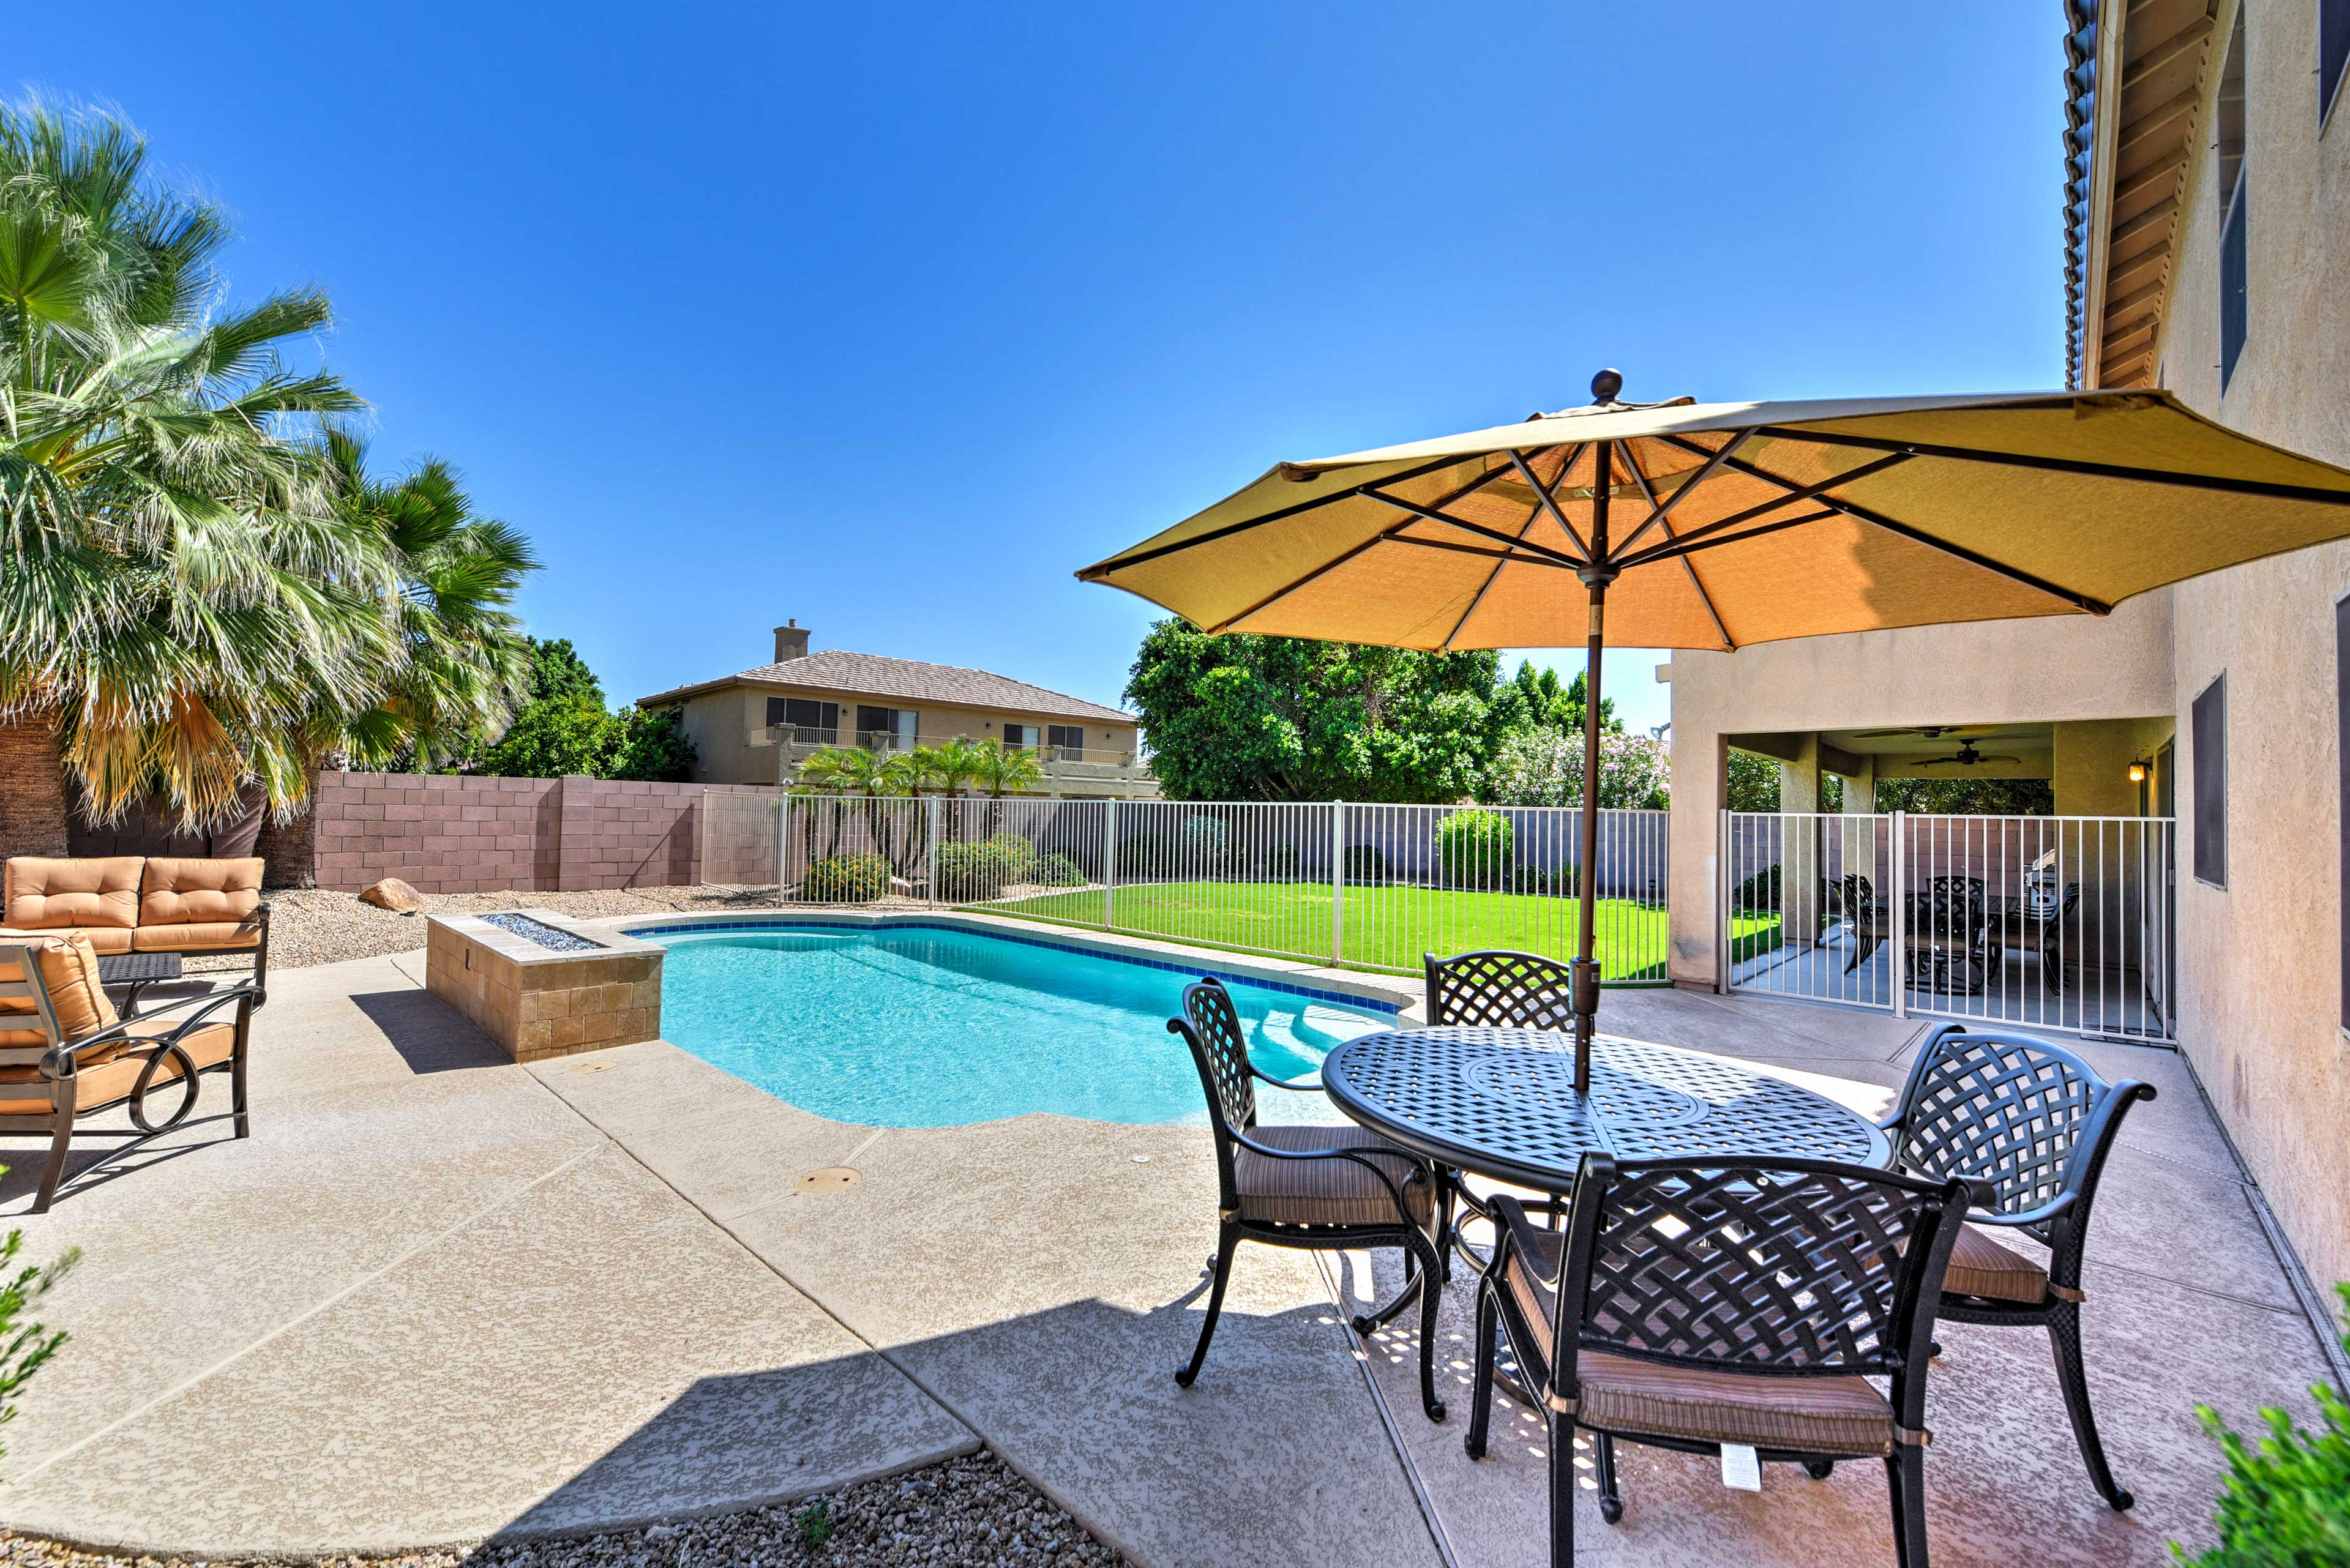 Sit back and soak up the sun by the pool.